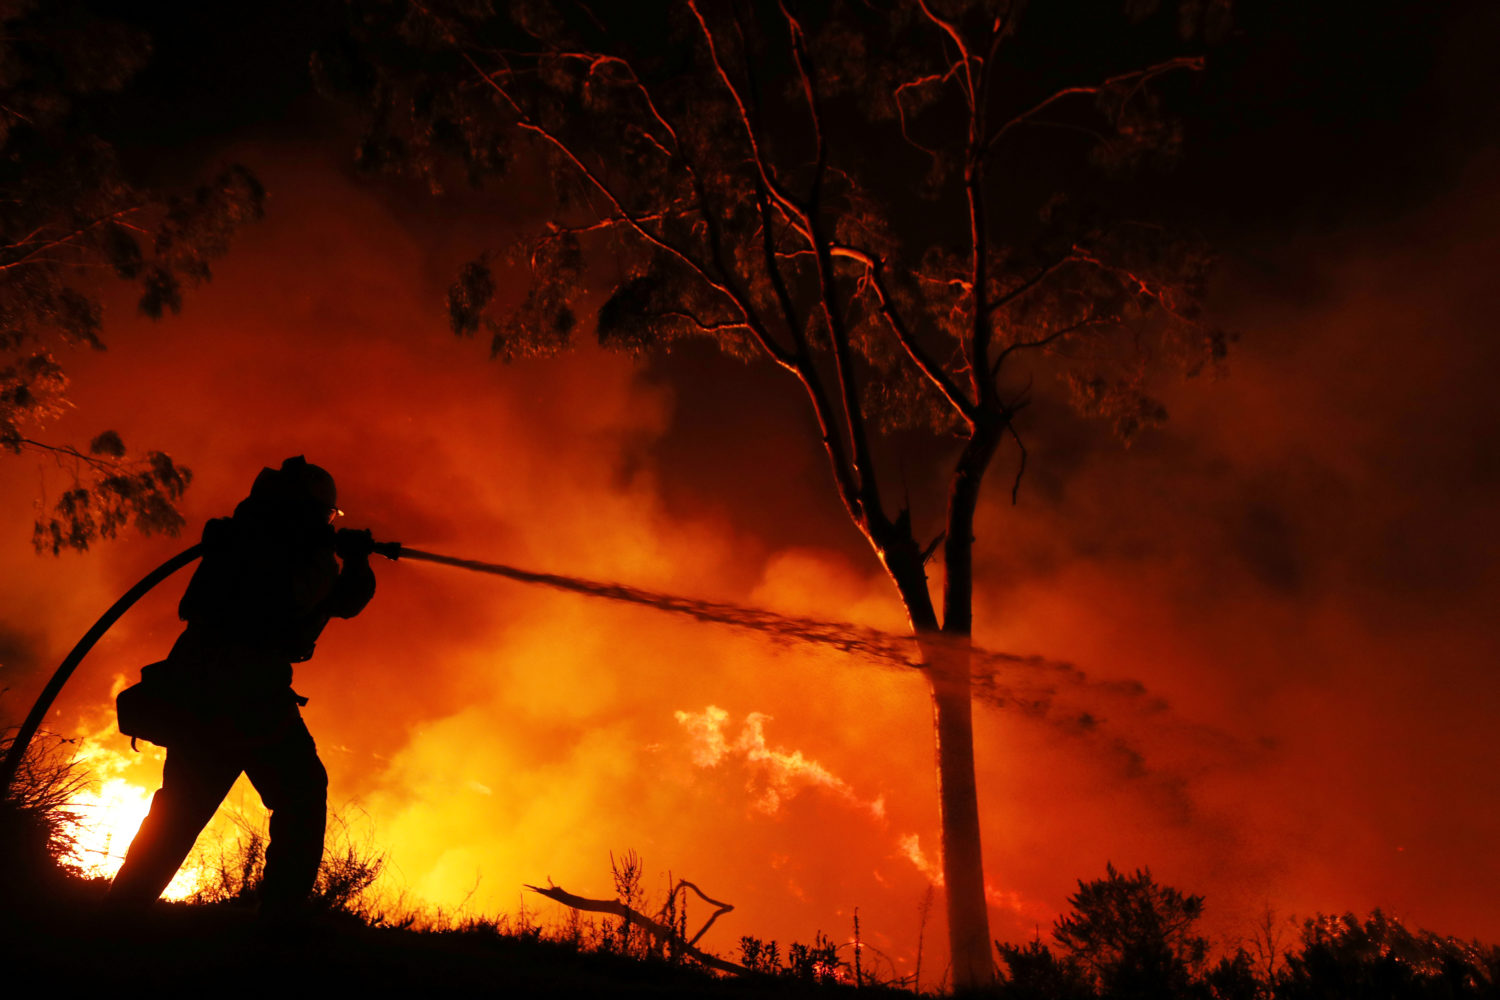 A firefighter is working on extinguishing the Lilac Fire, a fast moving wildfire in Bonsall.